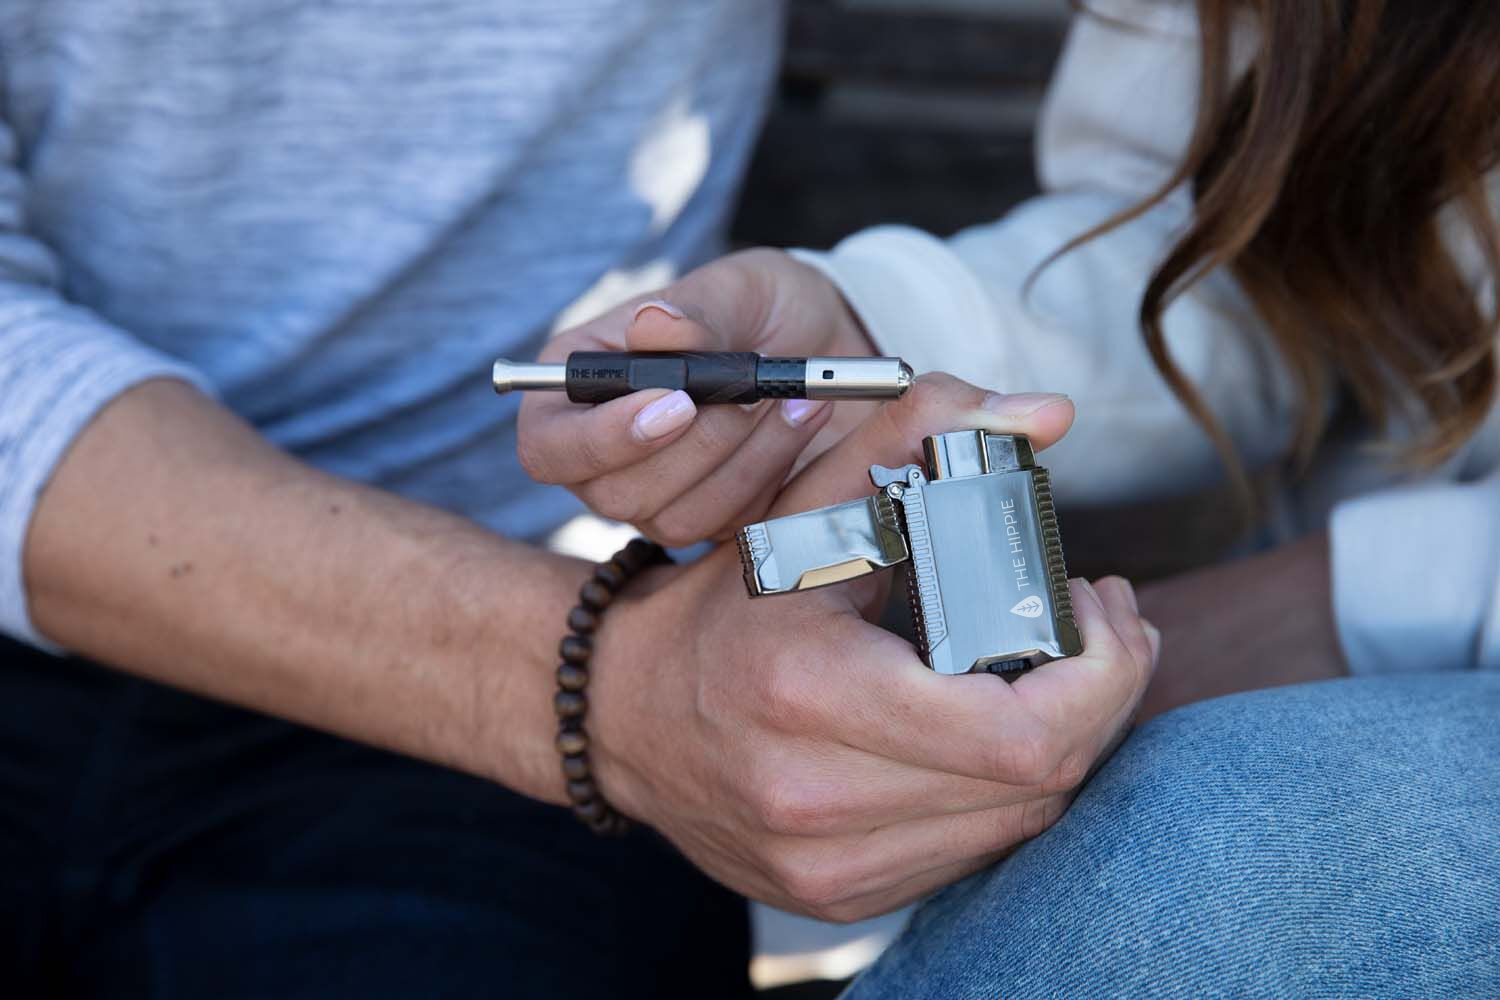 The Hippie Double Jet Flame Torch Windproof lighter